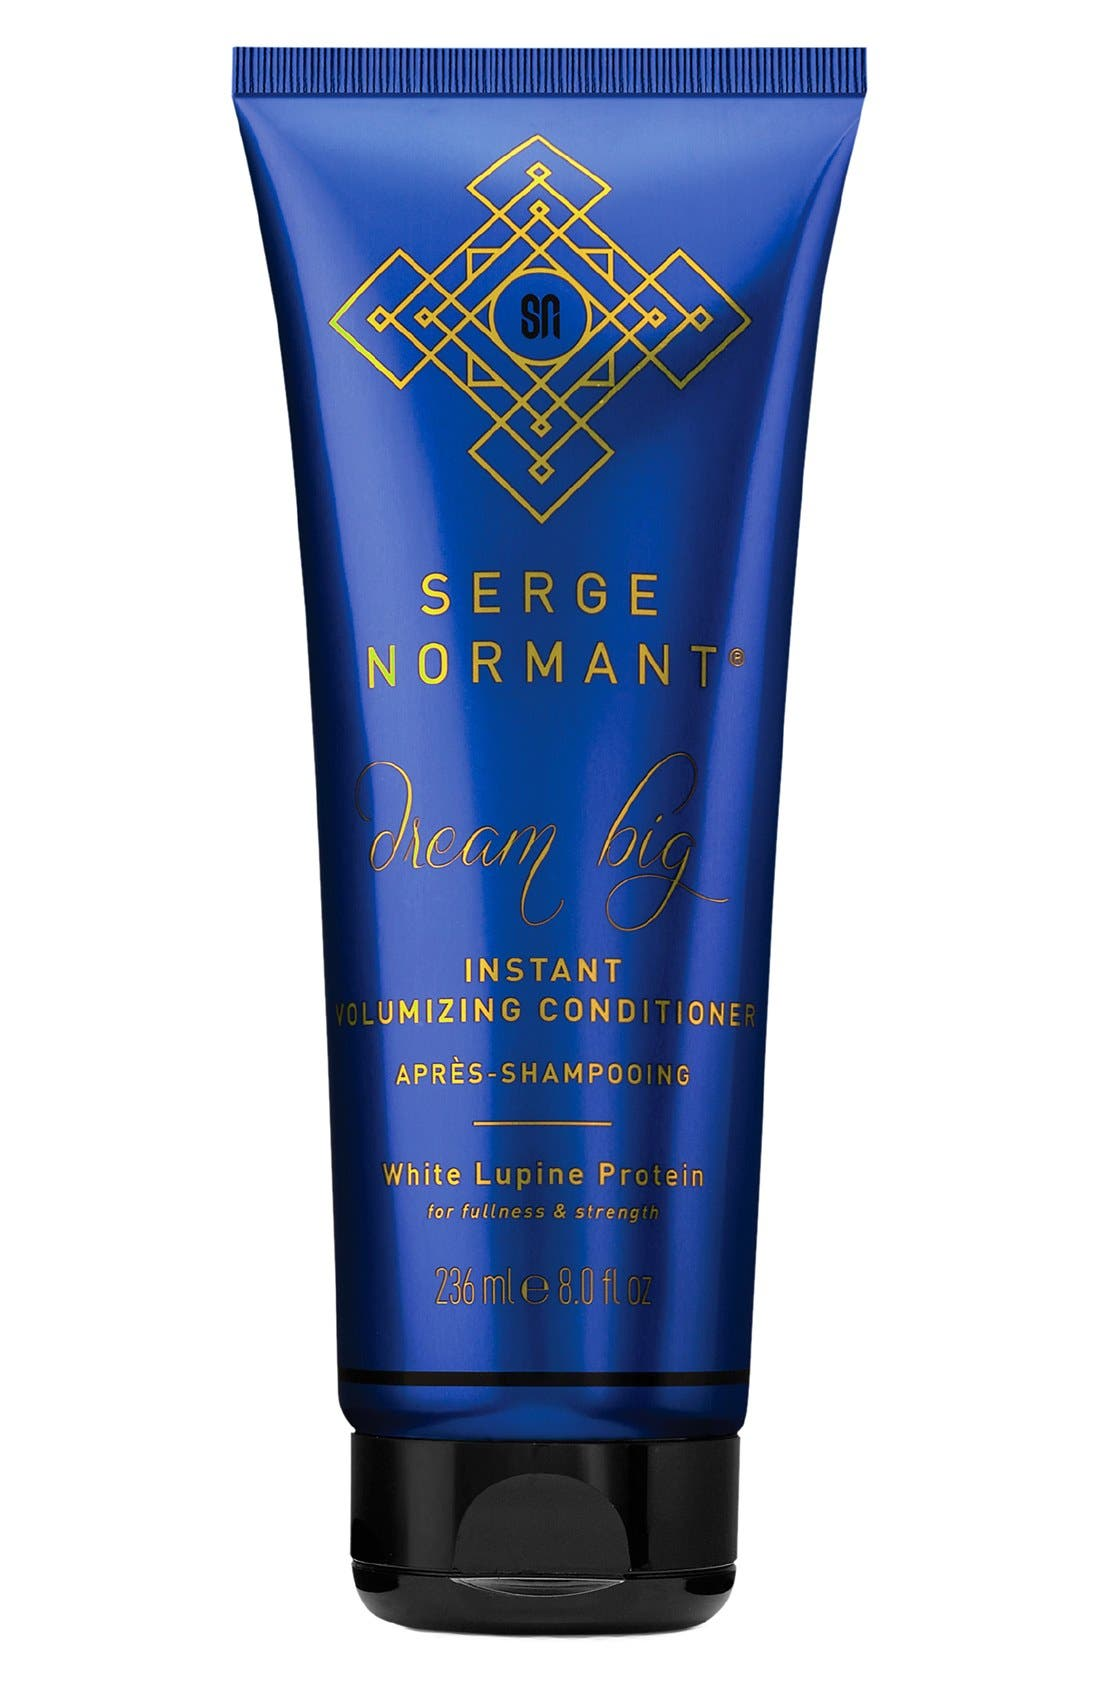 Serge Normant 'Dream Big' Instant Volumizing Conditioner